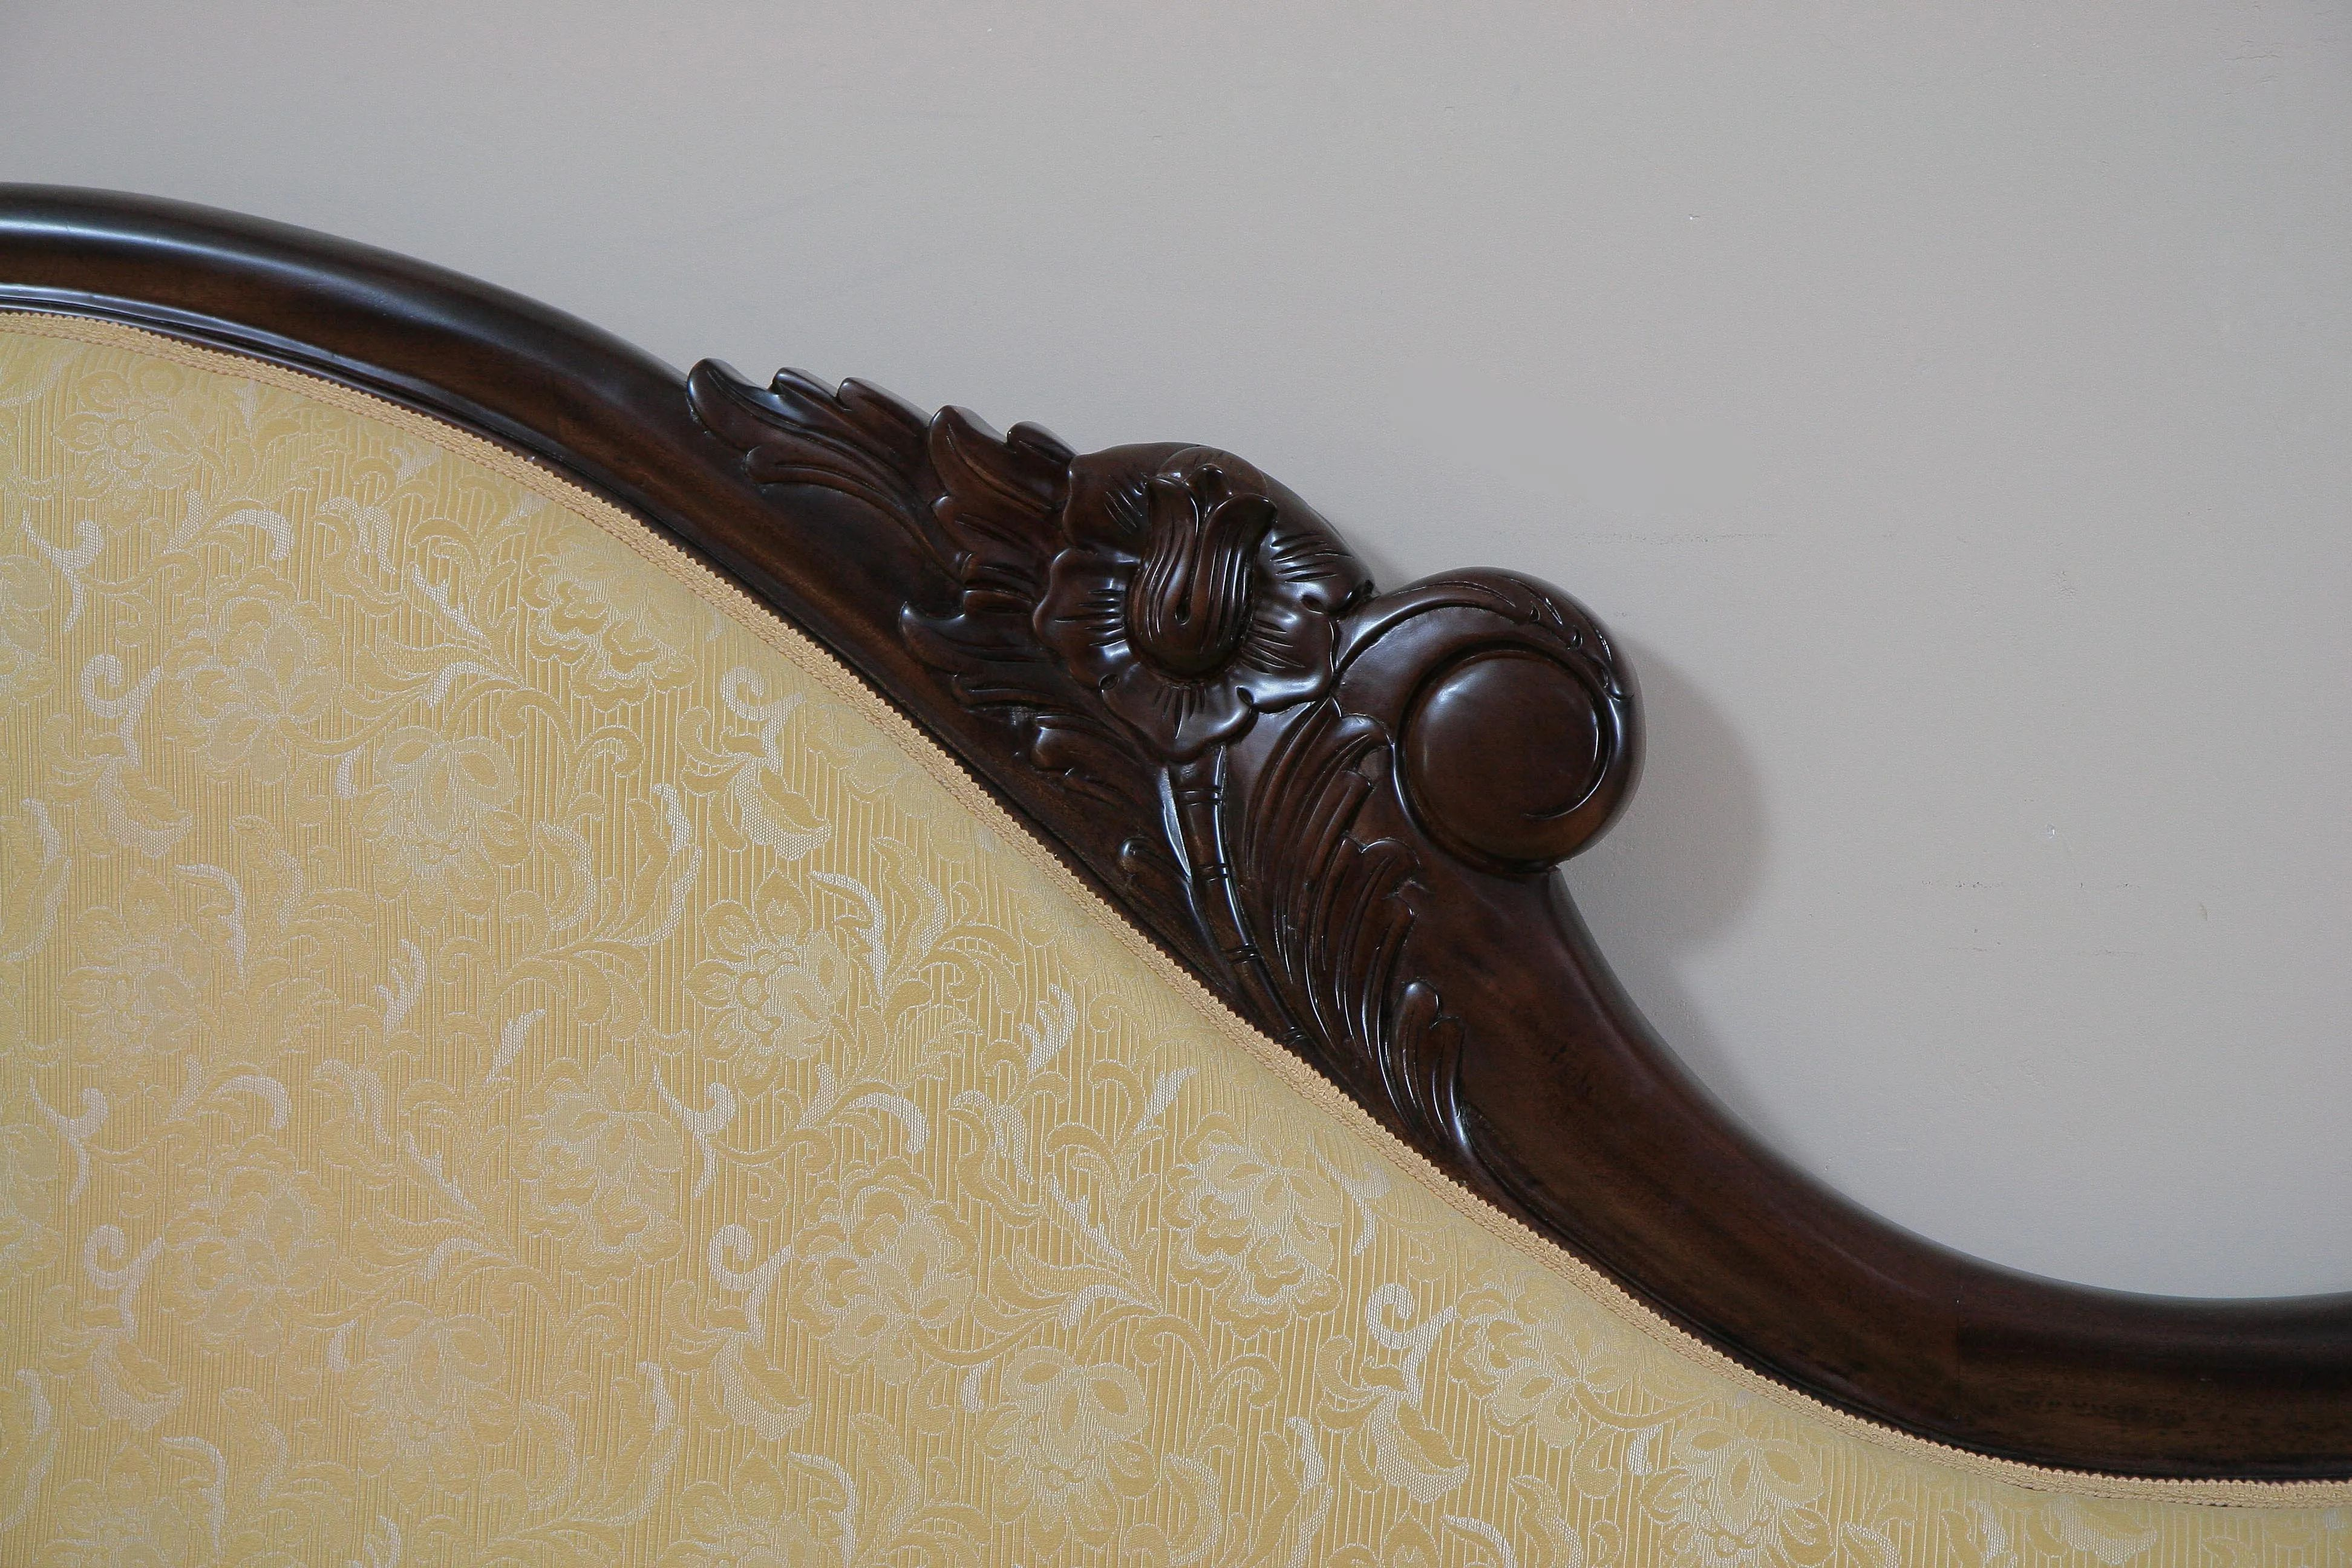 Backrest rail wood carving and upholstery edge detail